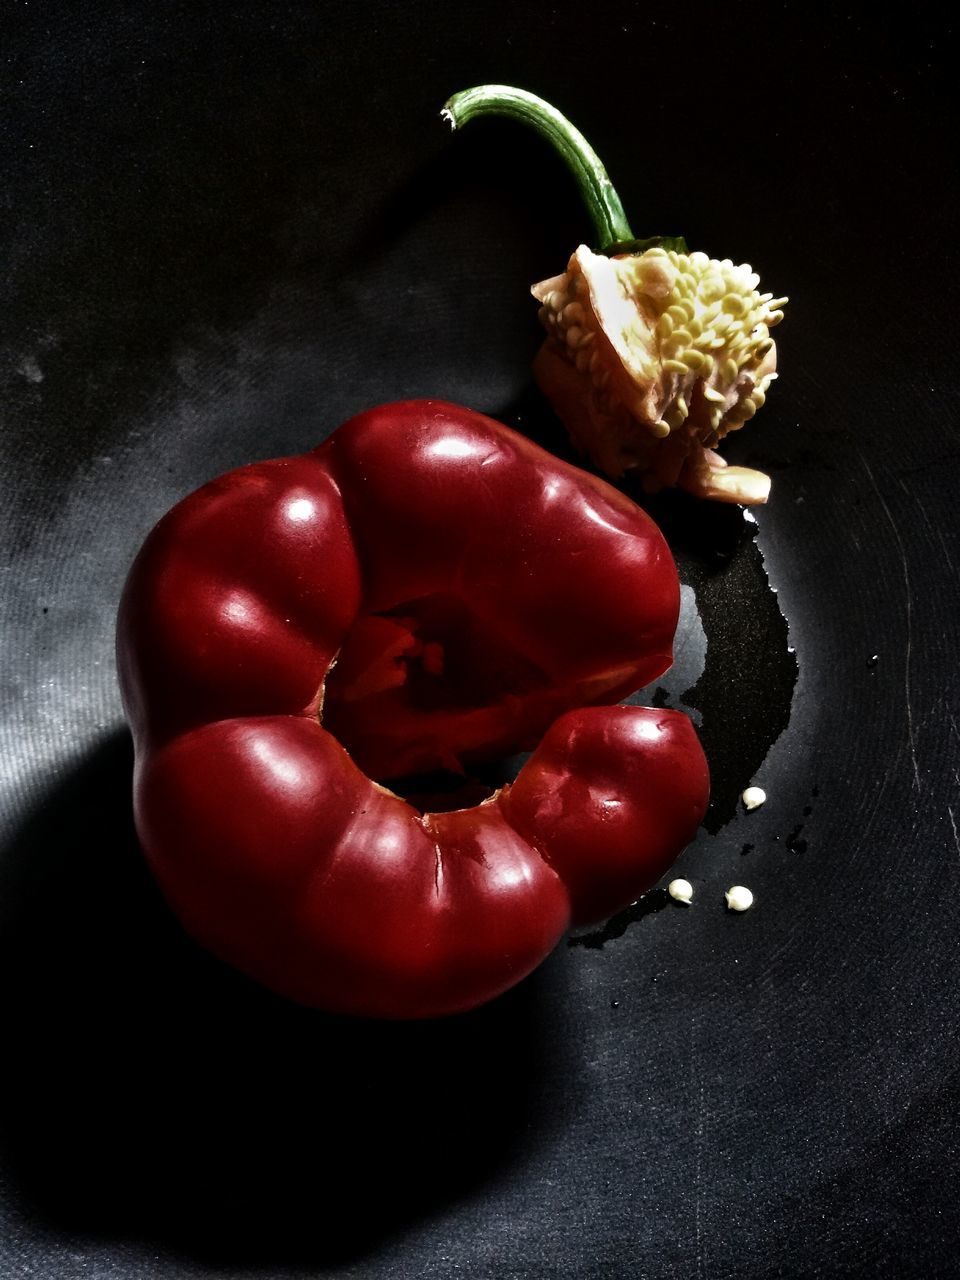 food and drink, food, still life, healthy eating, vegetable, freshness, red, indoors, table, no people, high angle view, close-up, tomato, studio shot, black background, day